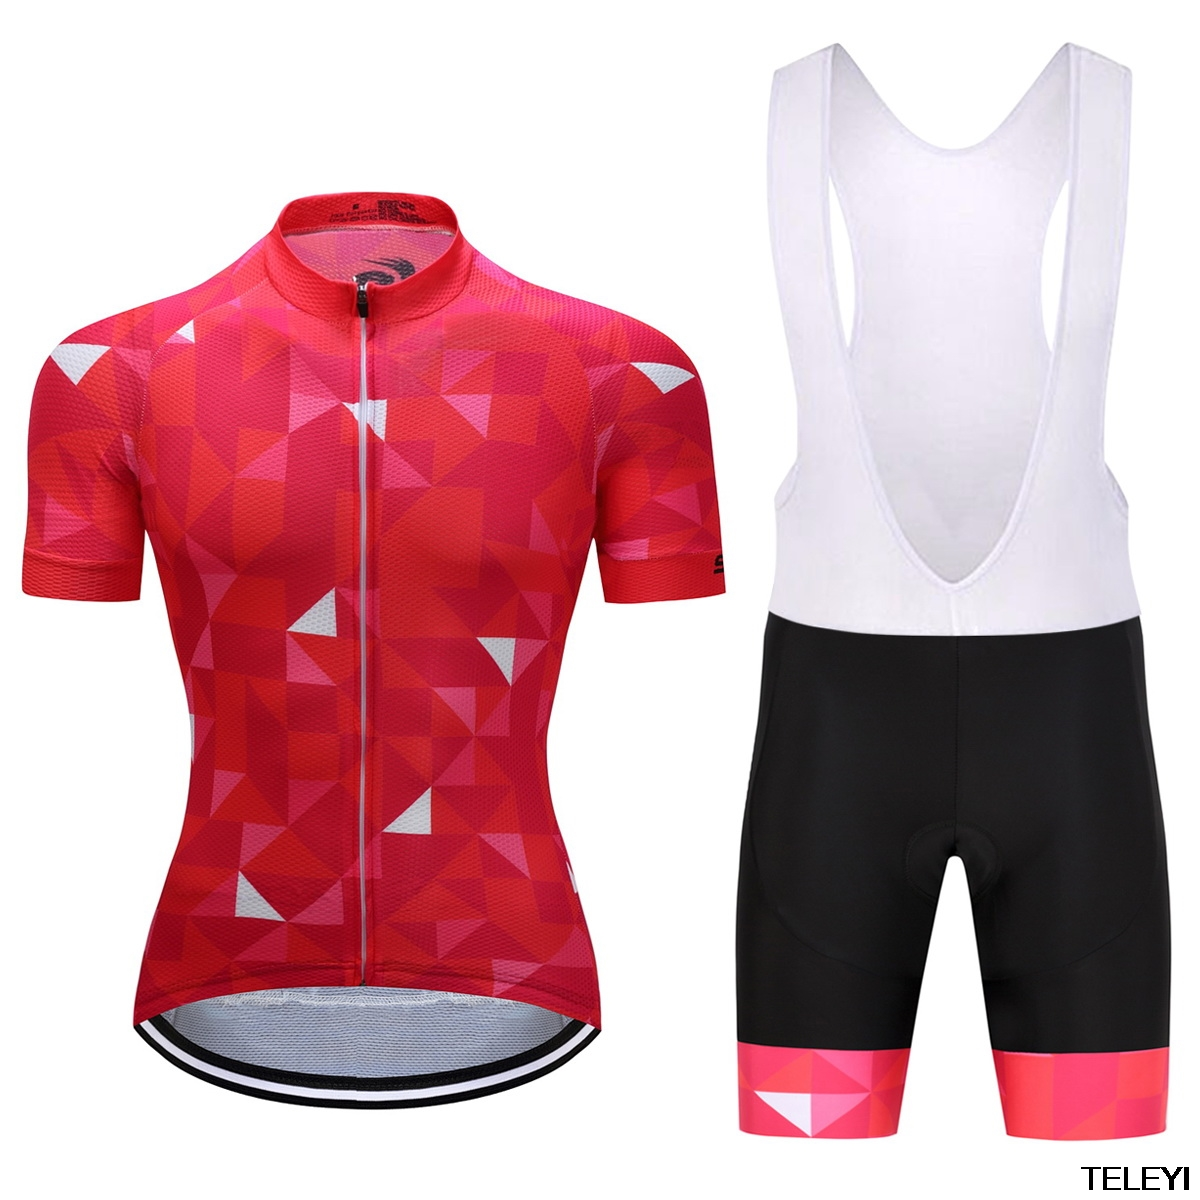 2017 teleyi Pro team bora cycling kit Red yellow short sleeve Jersey and bib  shorts sets Summer riding clothes ropa Ciclismo-in Cycling Sets from Sports  ... b988f6ef0